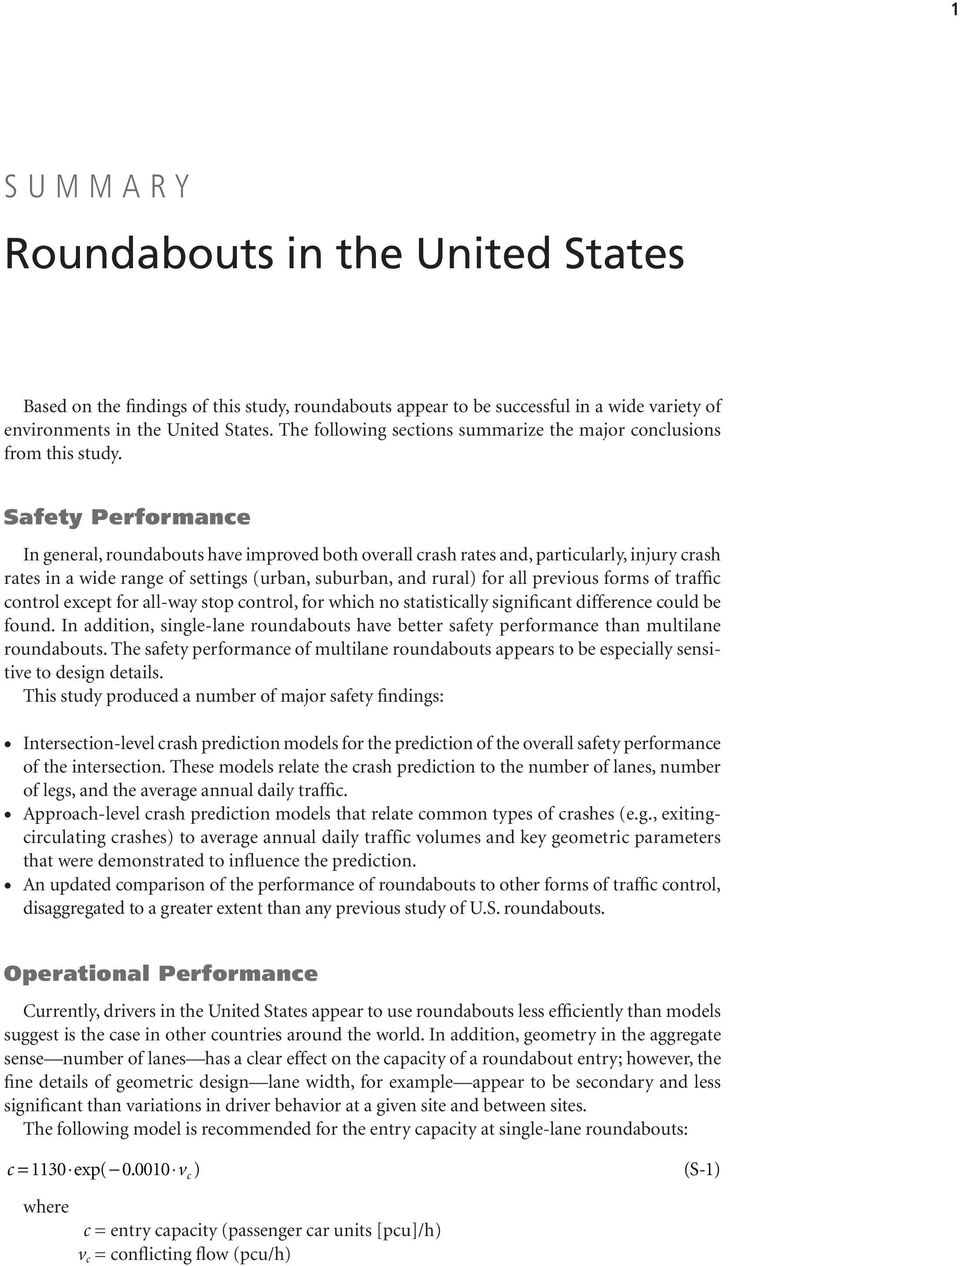 Safety Performance In general, roundabouts have improved both overall crash rates and, particularly, injury crash rates in a wide range of settings (urban, suburban, and rural) for all previous forms